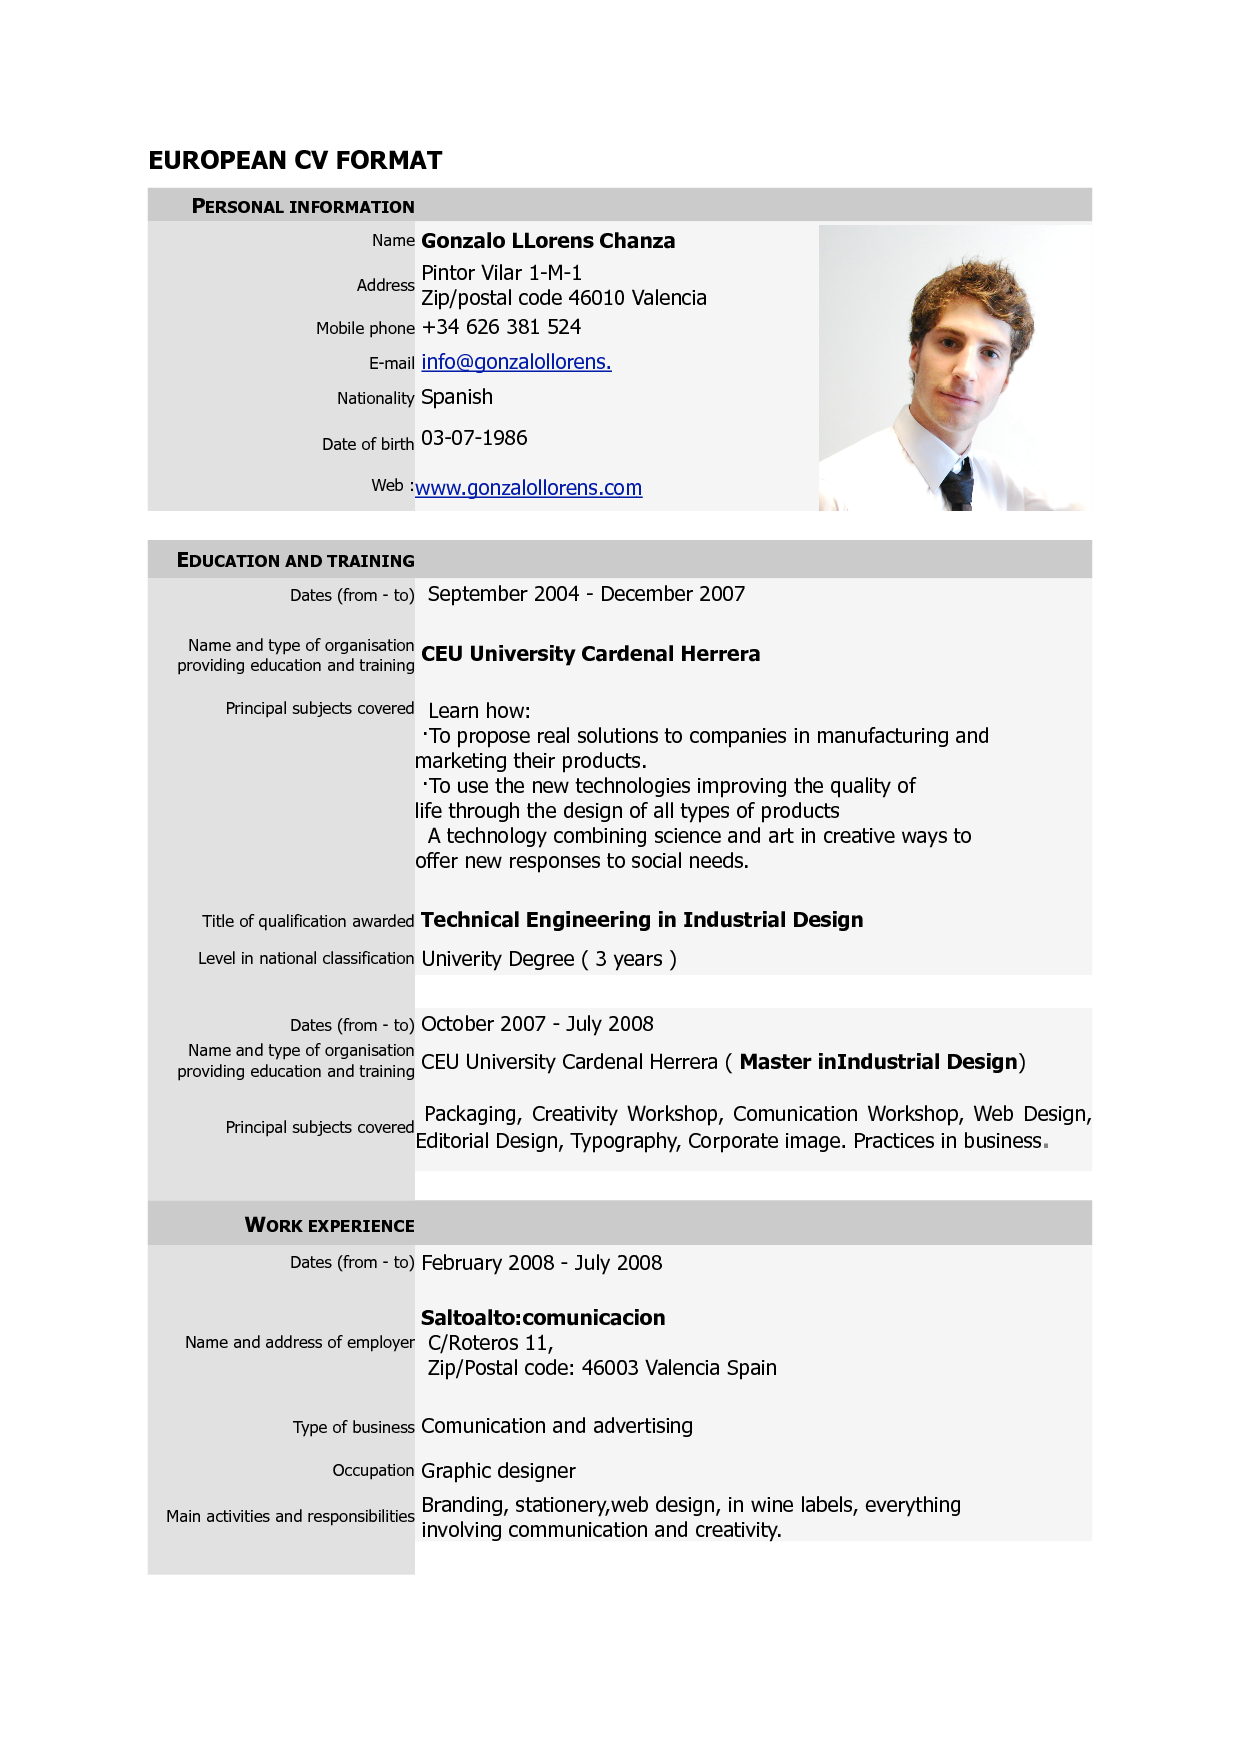 Resume Templates Tamu Amusing Free Download Cv Europass Pdf Europass Home European Cv Format Pdf